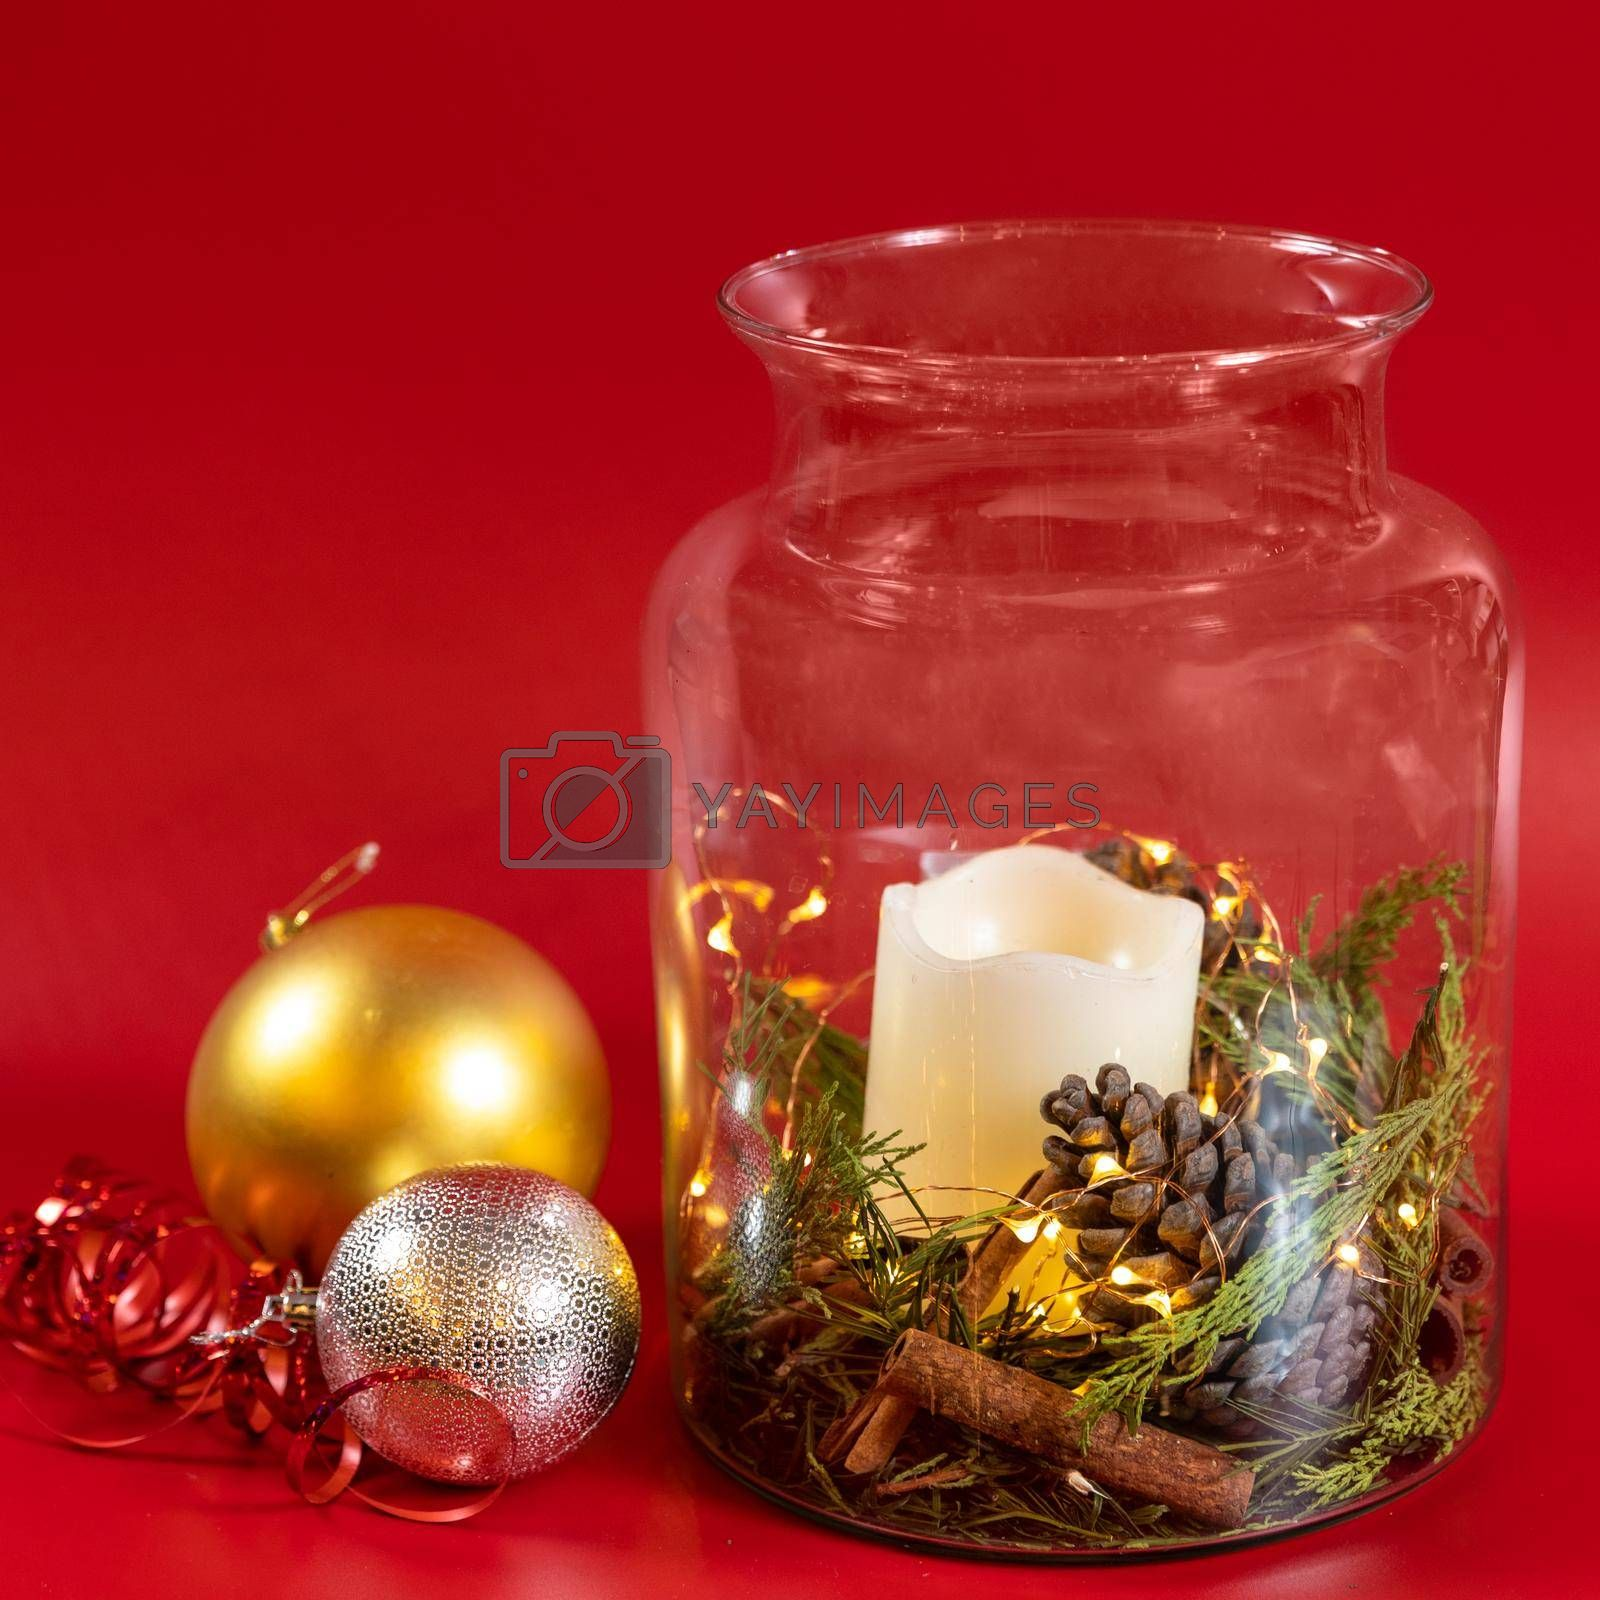 Christmas toy, decor, candle in the jar, red background